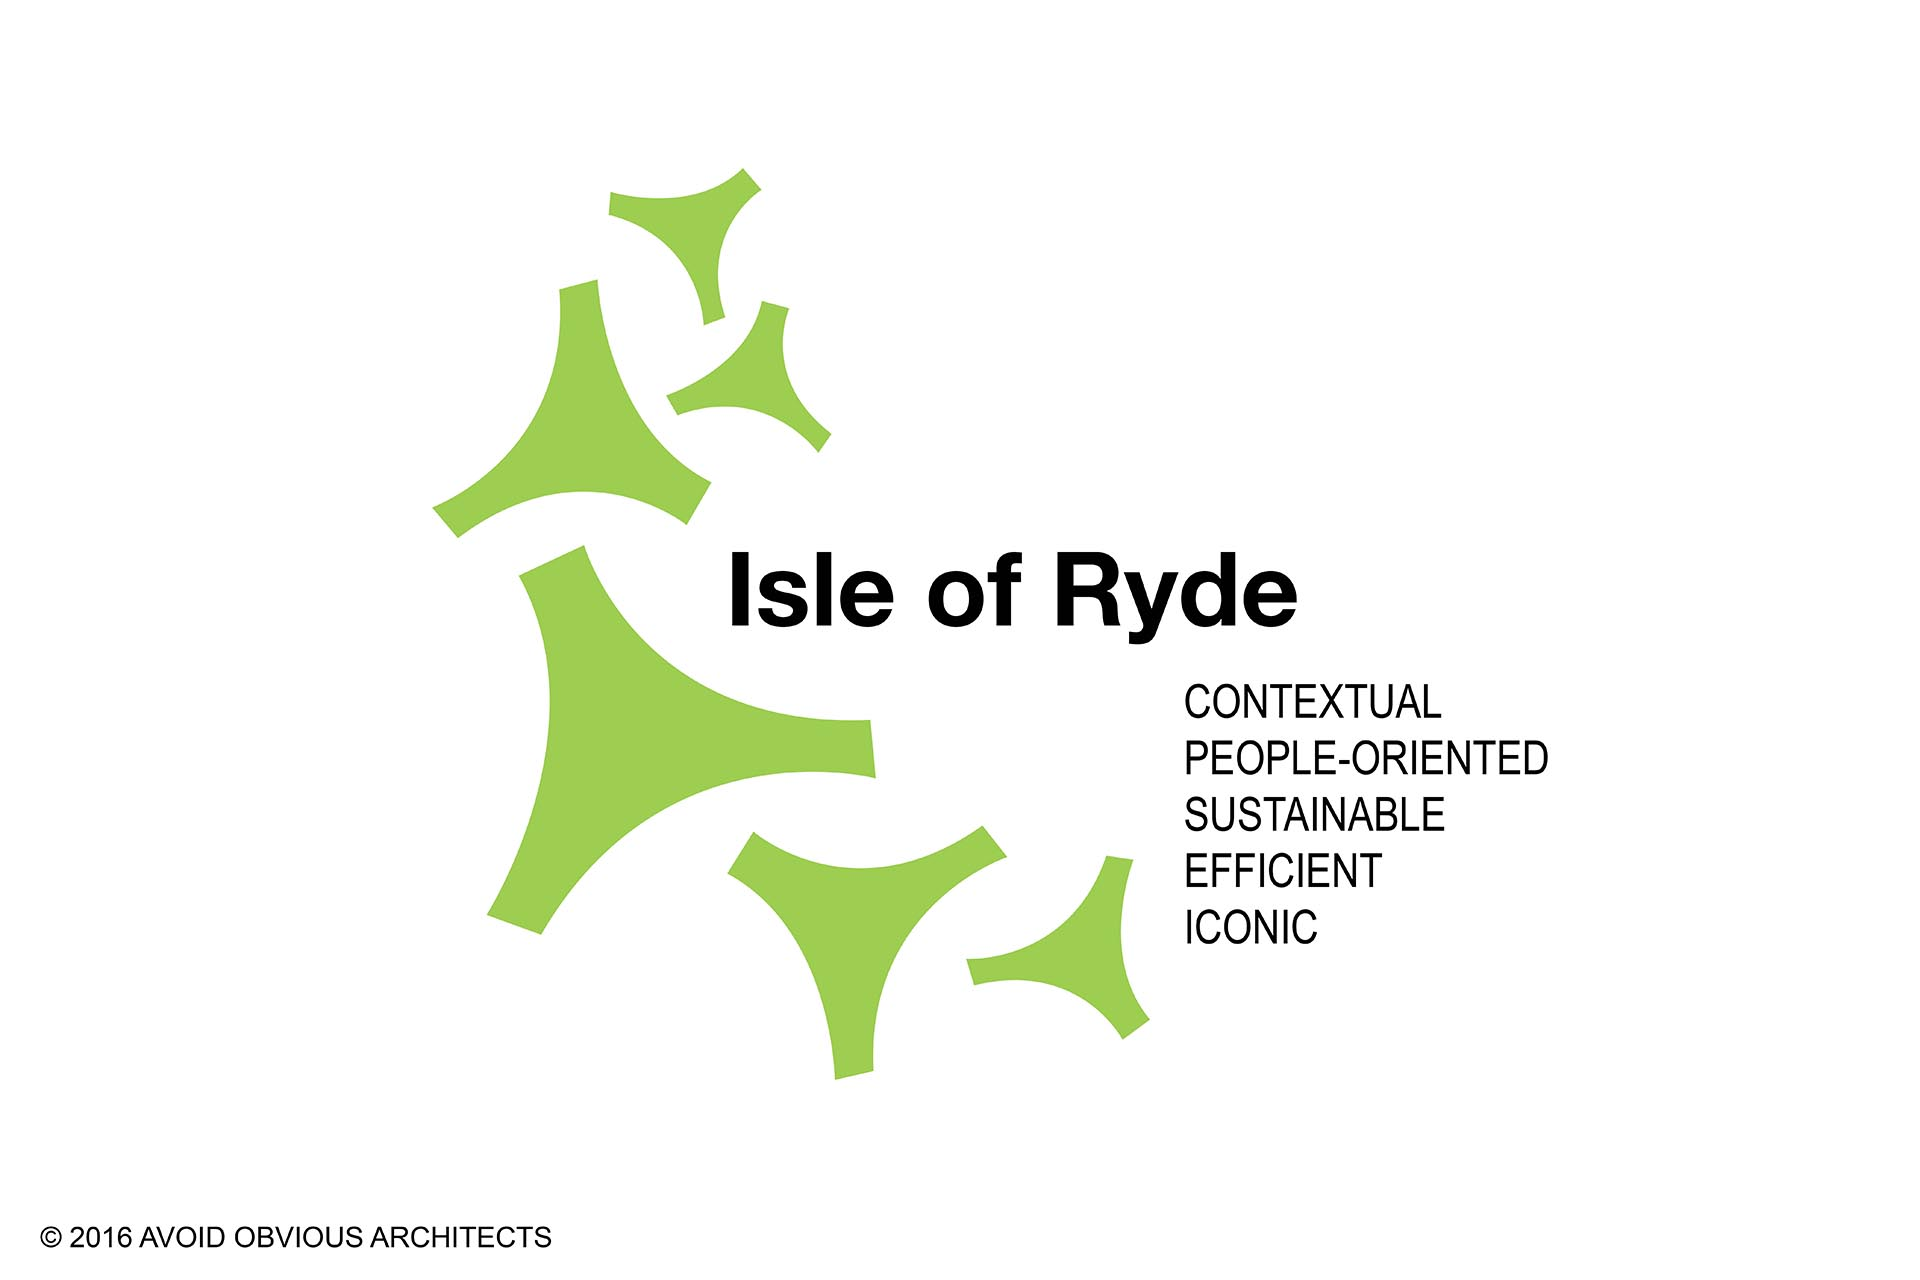 Ryde, Australia, Civic, Architecture, Plaza, Art, Avoid Obvious, Architects, AOA, sustainable, design, urban planning, rehab, old, new, renew, regenerate, revitalize